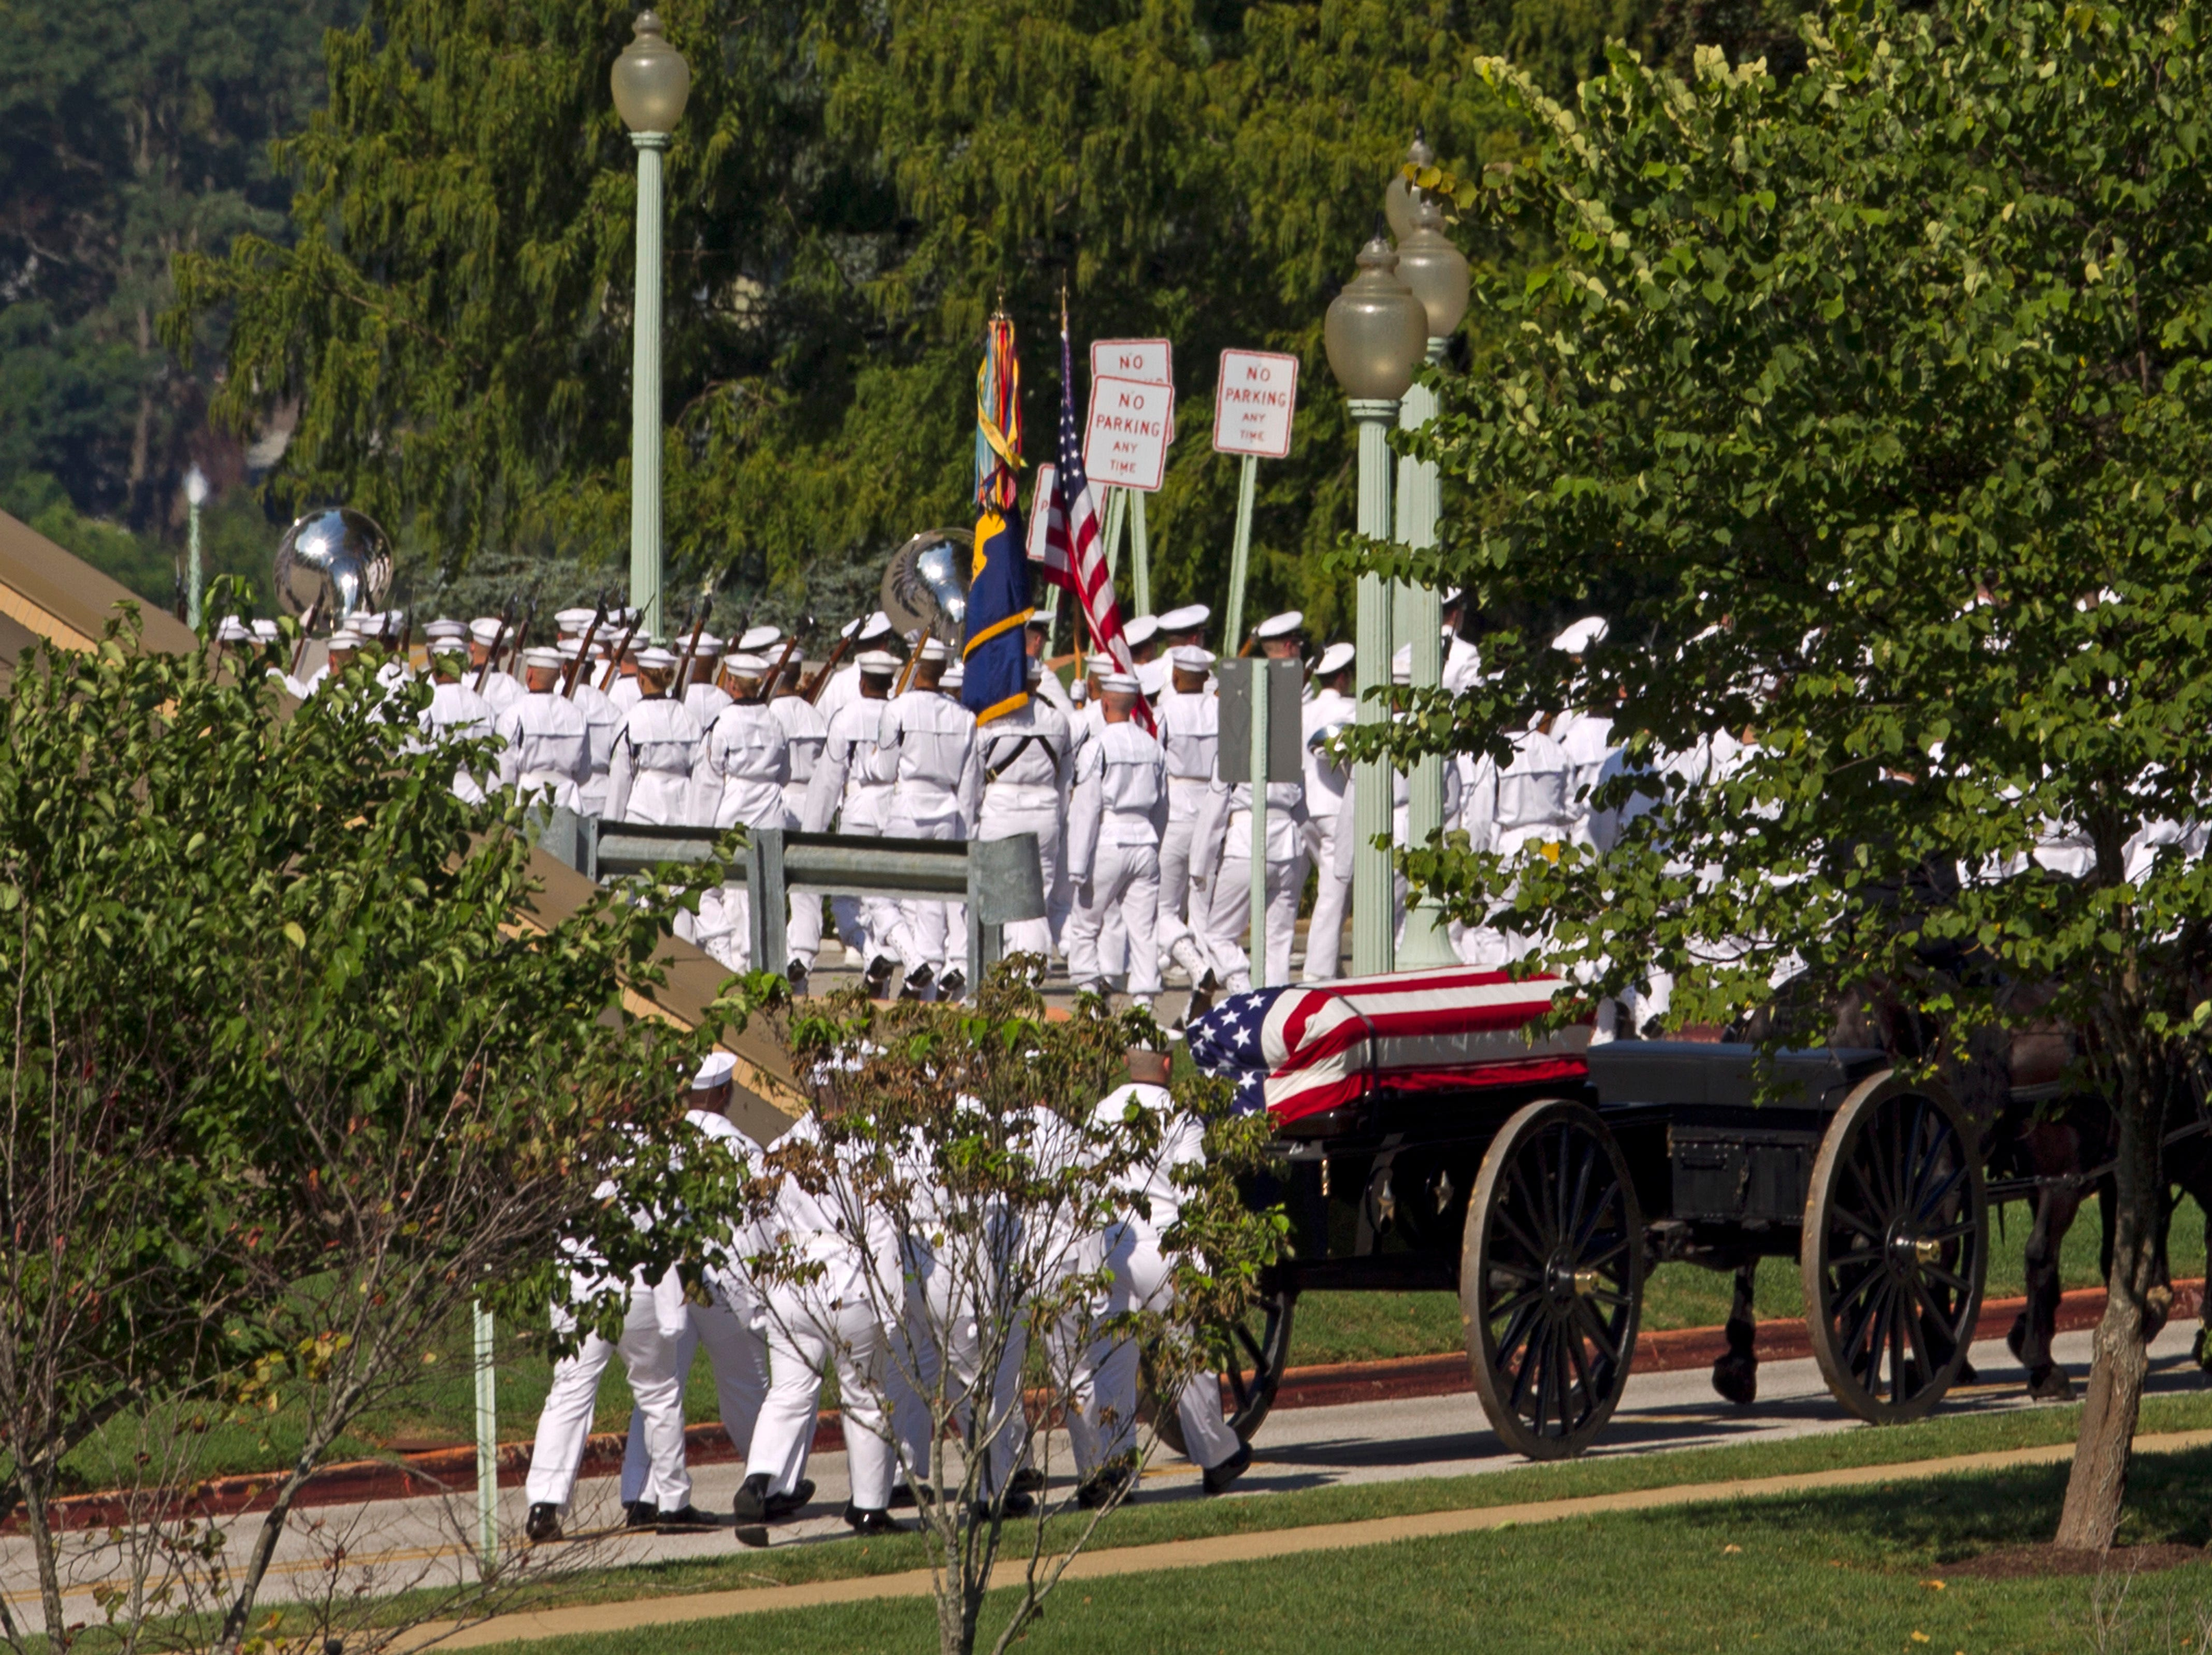 A horse-drawn caisson carries the casket containing the remains of Sen. John McCain to his burial site at the United States Naval Academy Cemetery in Annapolis, Maryland, Sept. 2, 2018. McCain died Aug. 25 from brain cancer at age 81.